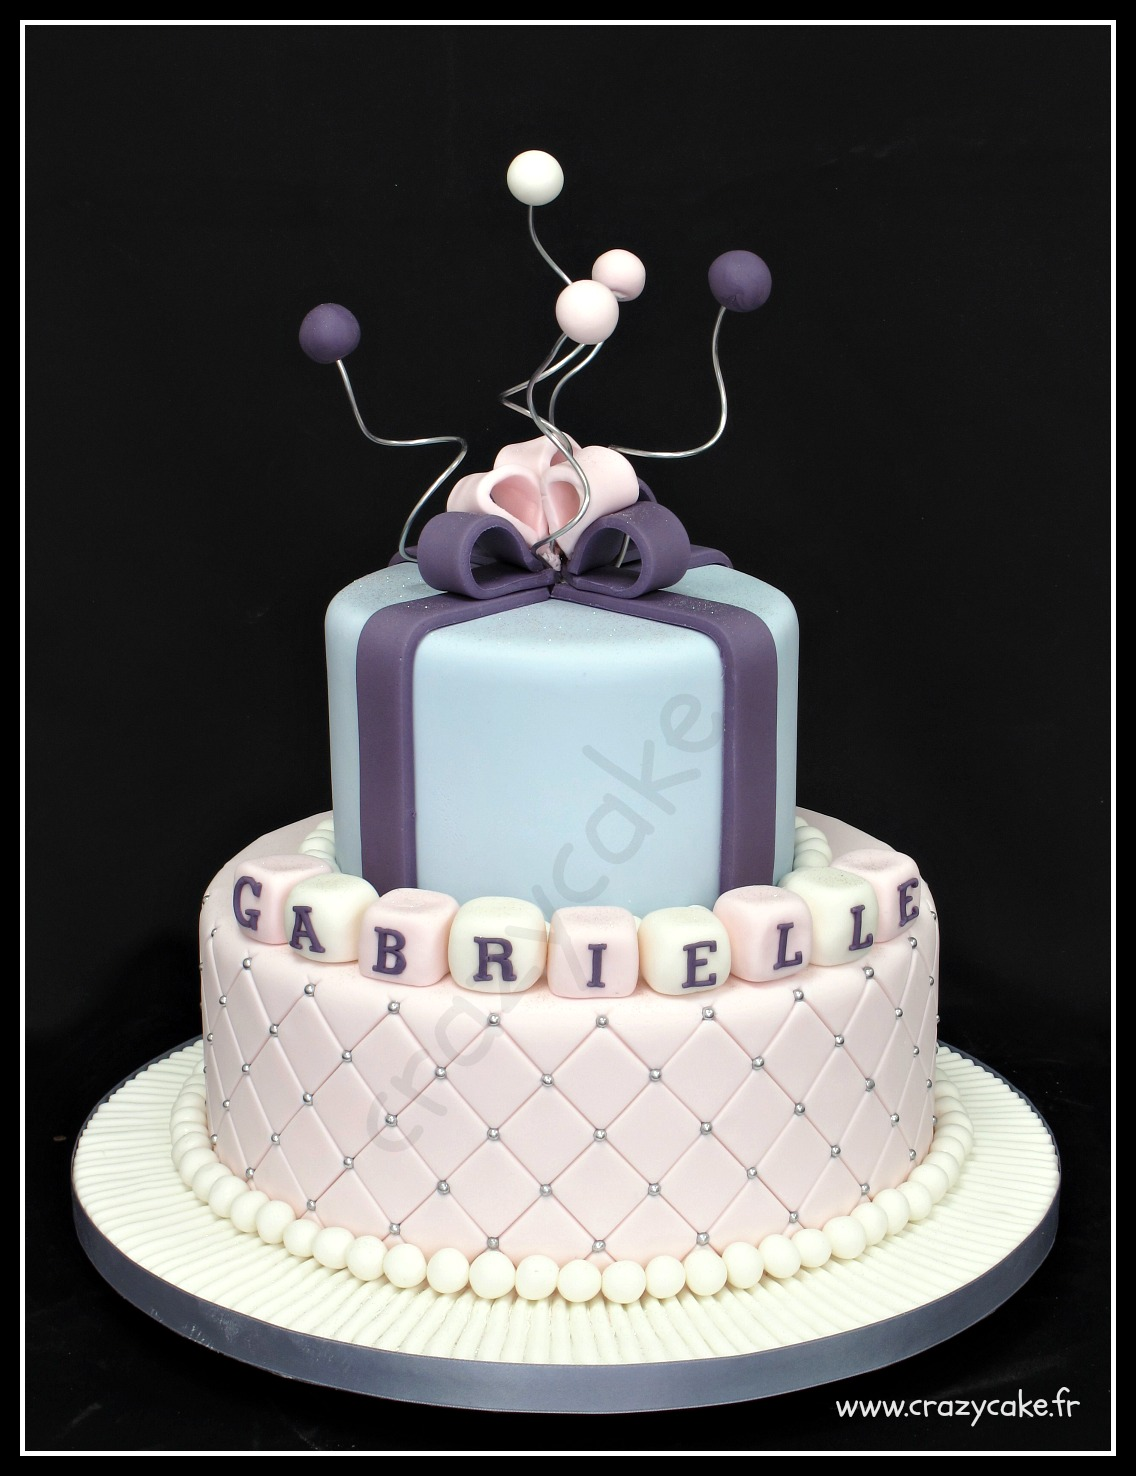 Magasin Cake Design Luxembourg : CRAZY CAKE - CAKE DESIGN, THIONVILLE, METZ, LUXEMBOURG ...